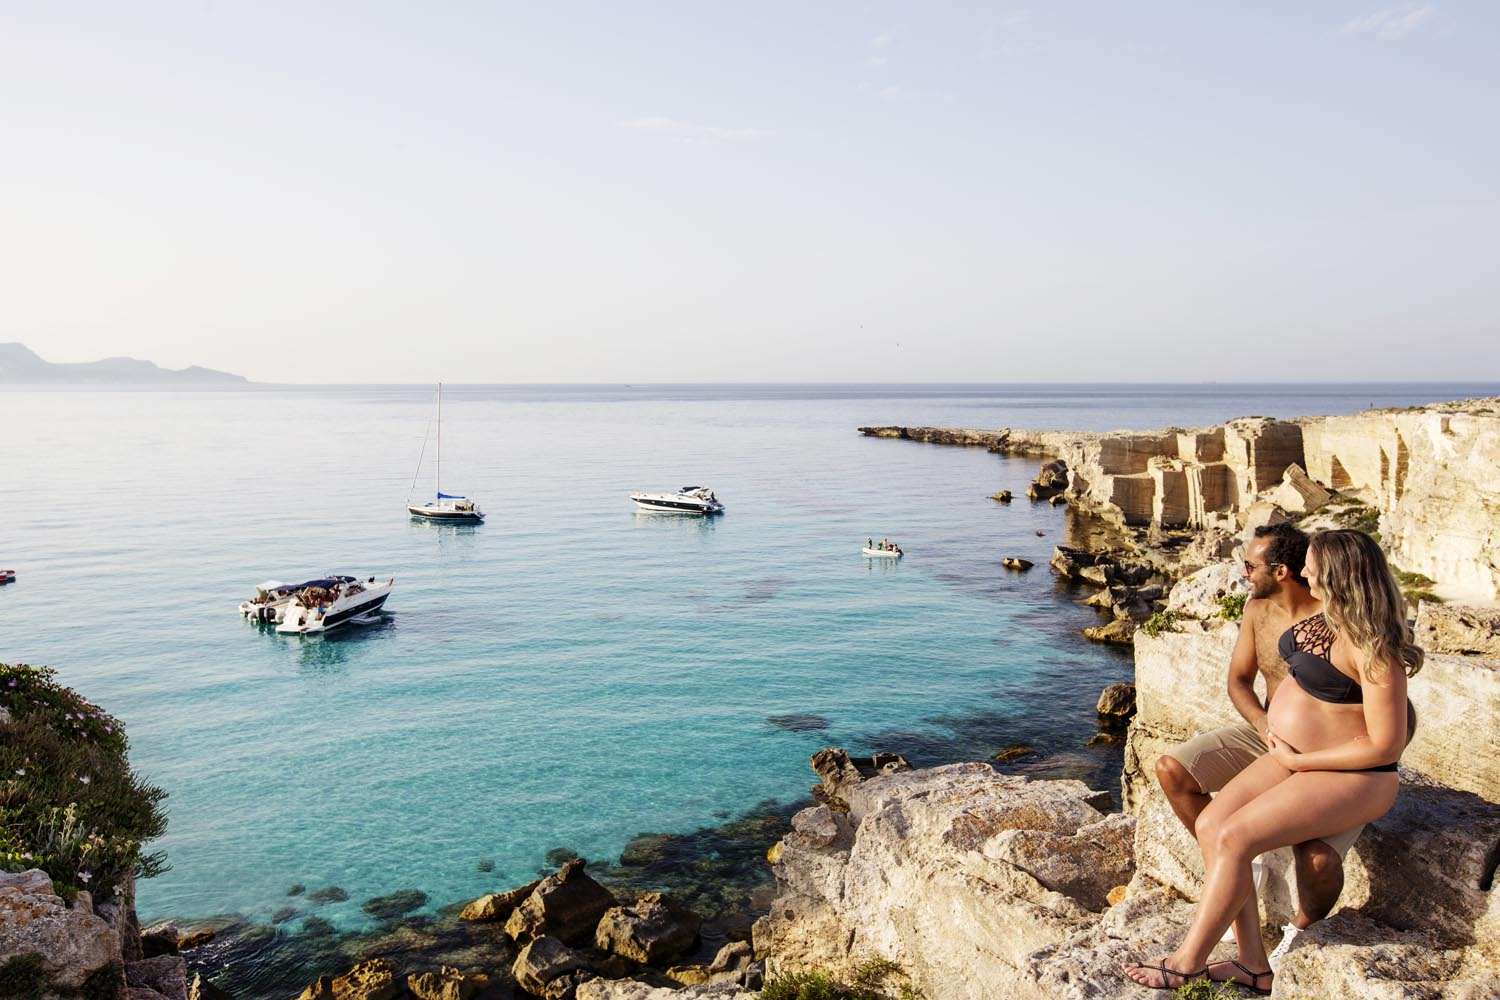 Photographer in Favignana for shooting at the see